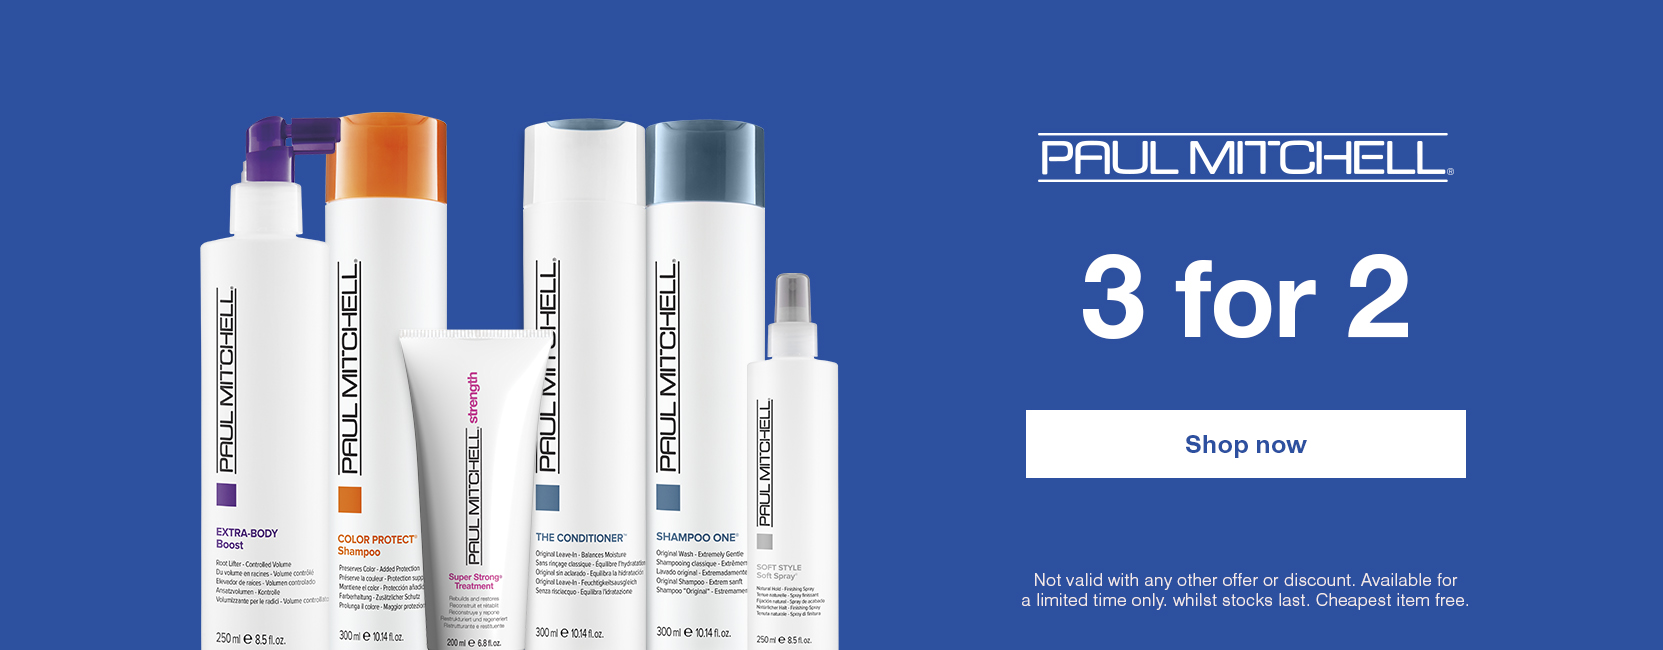 Paul Mitchell 2 for 2